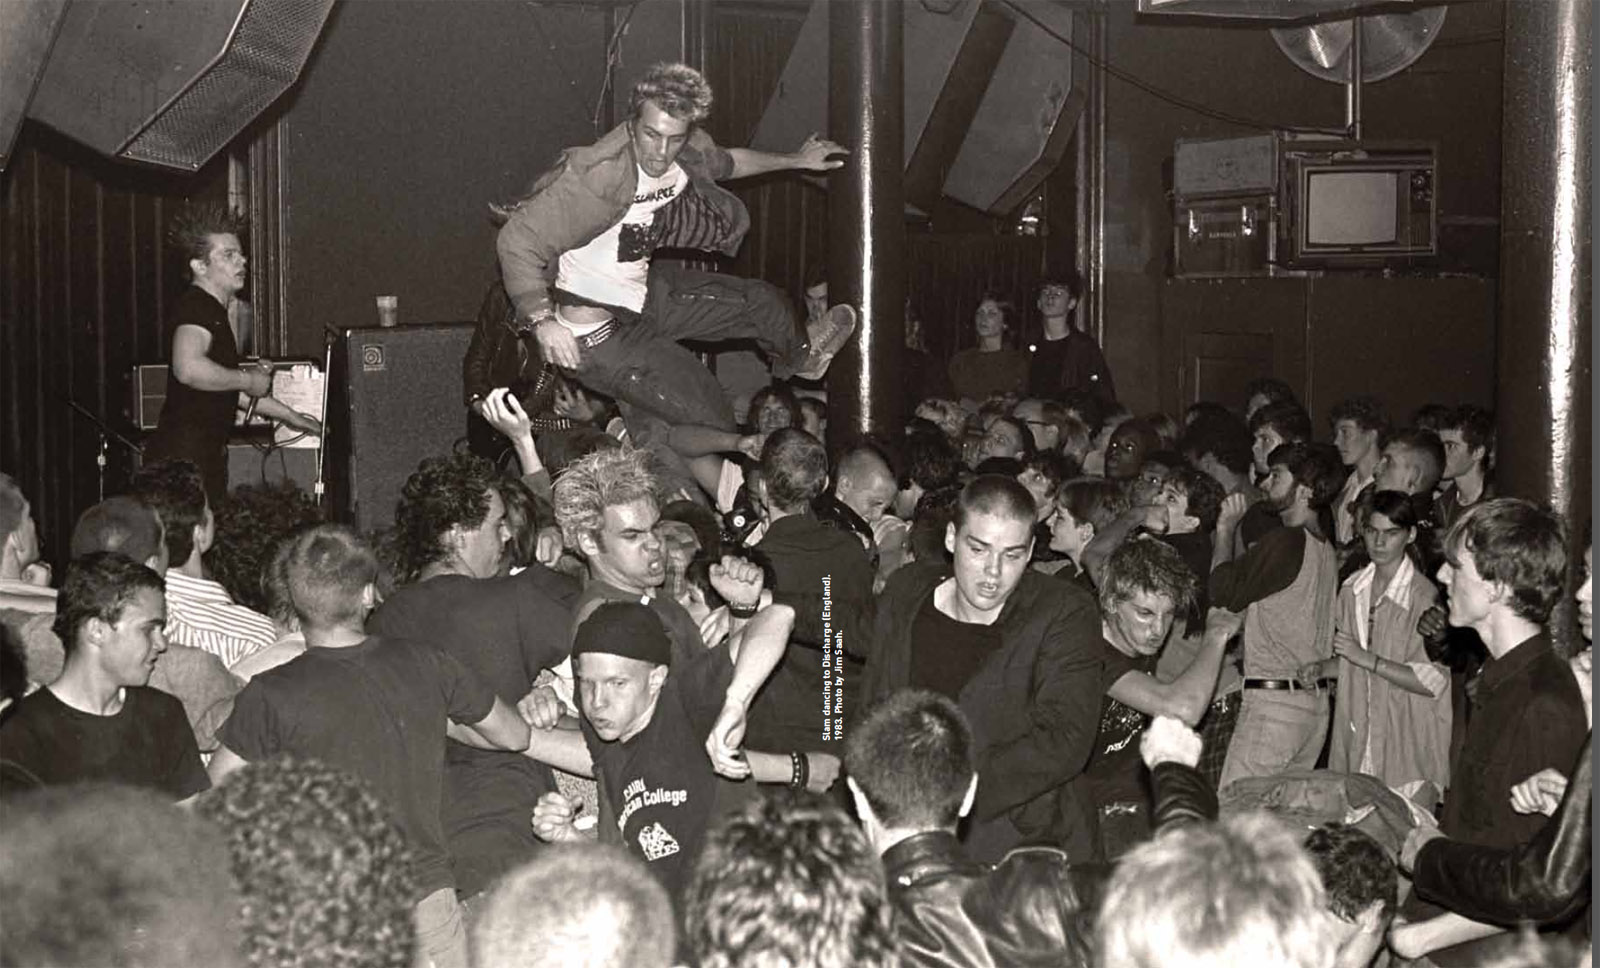 9:30 Club turns 40: Rats, stench, groundbreaking music